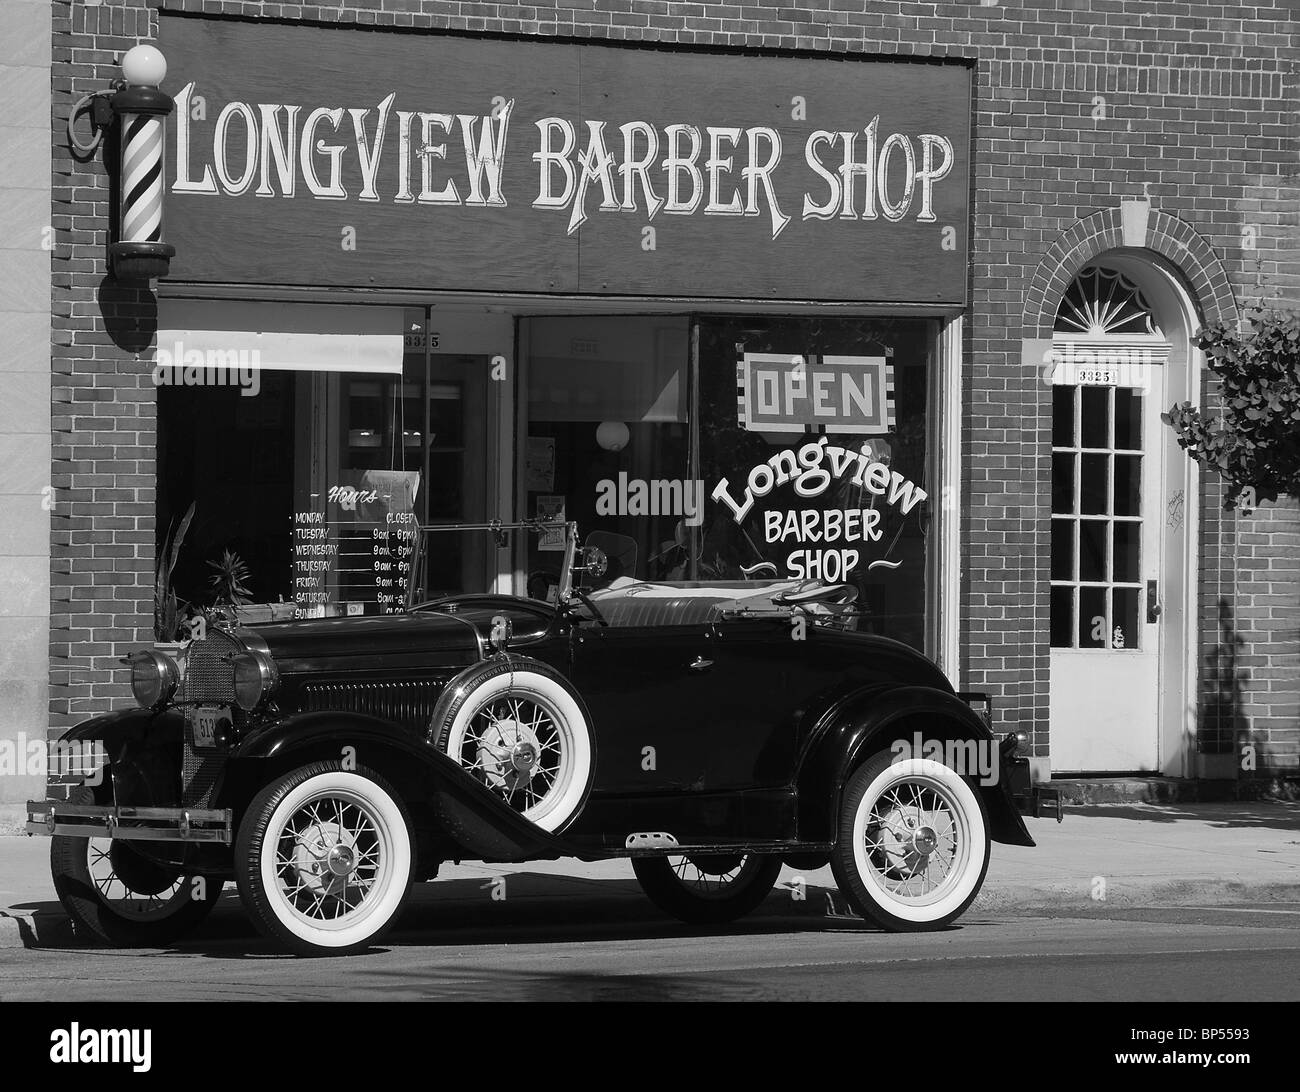 Pin Barber Shop Old School Style Les Nyc Flickr Photo Sharing on ...